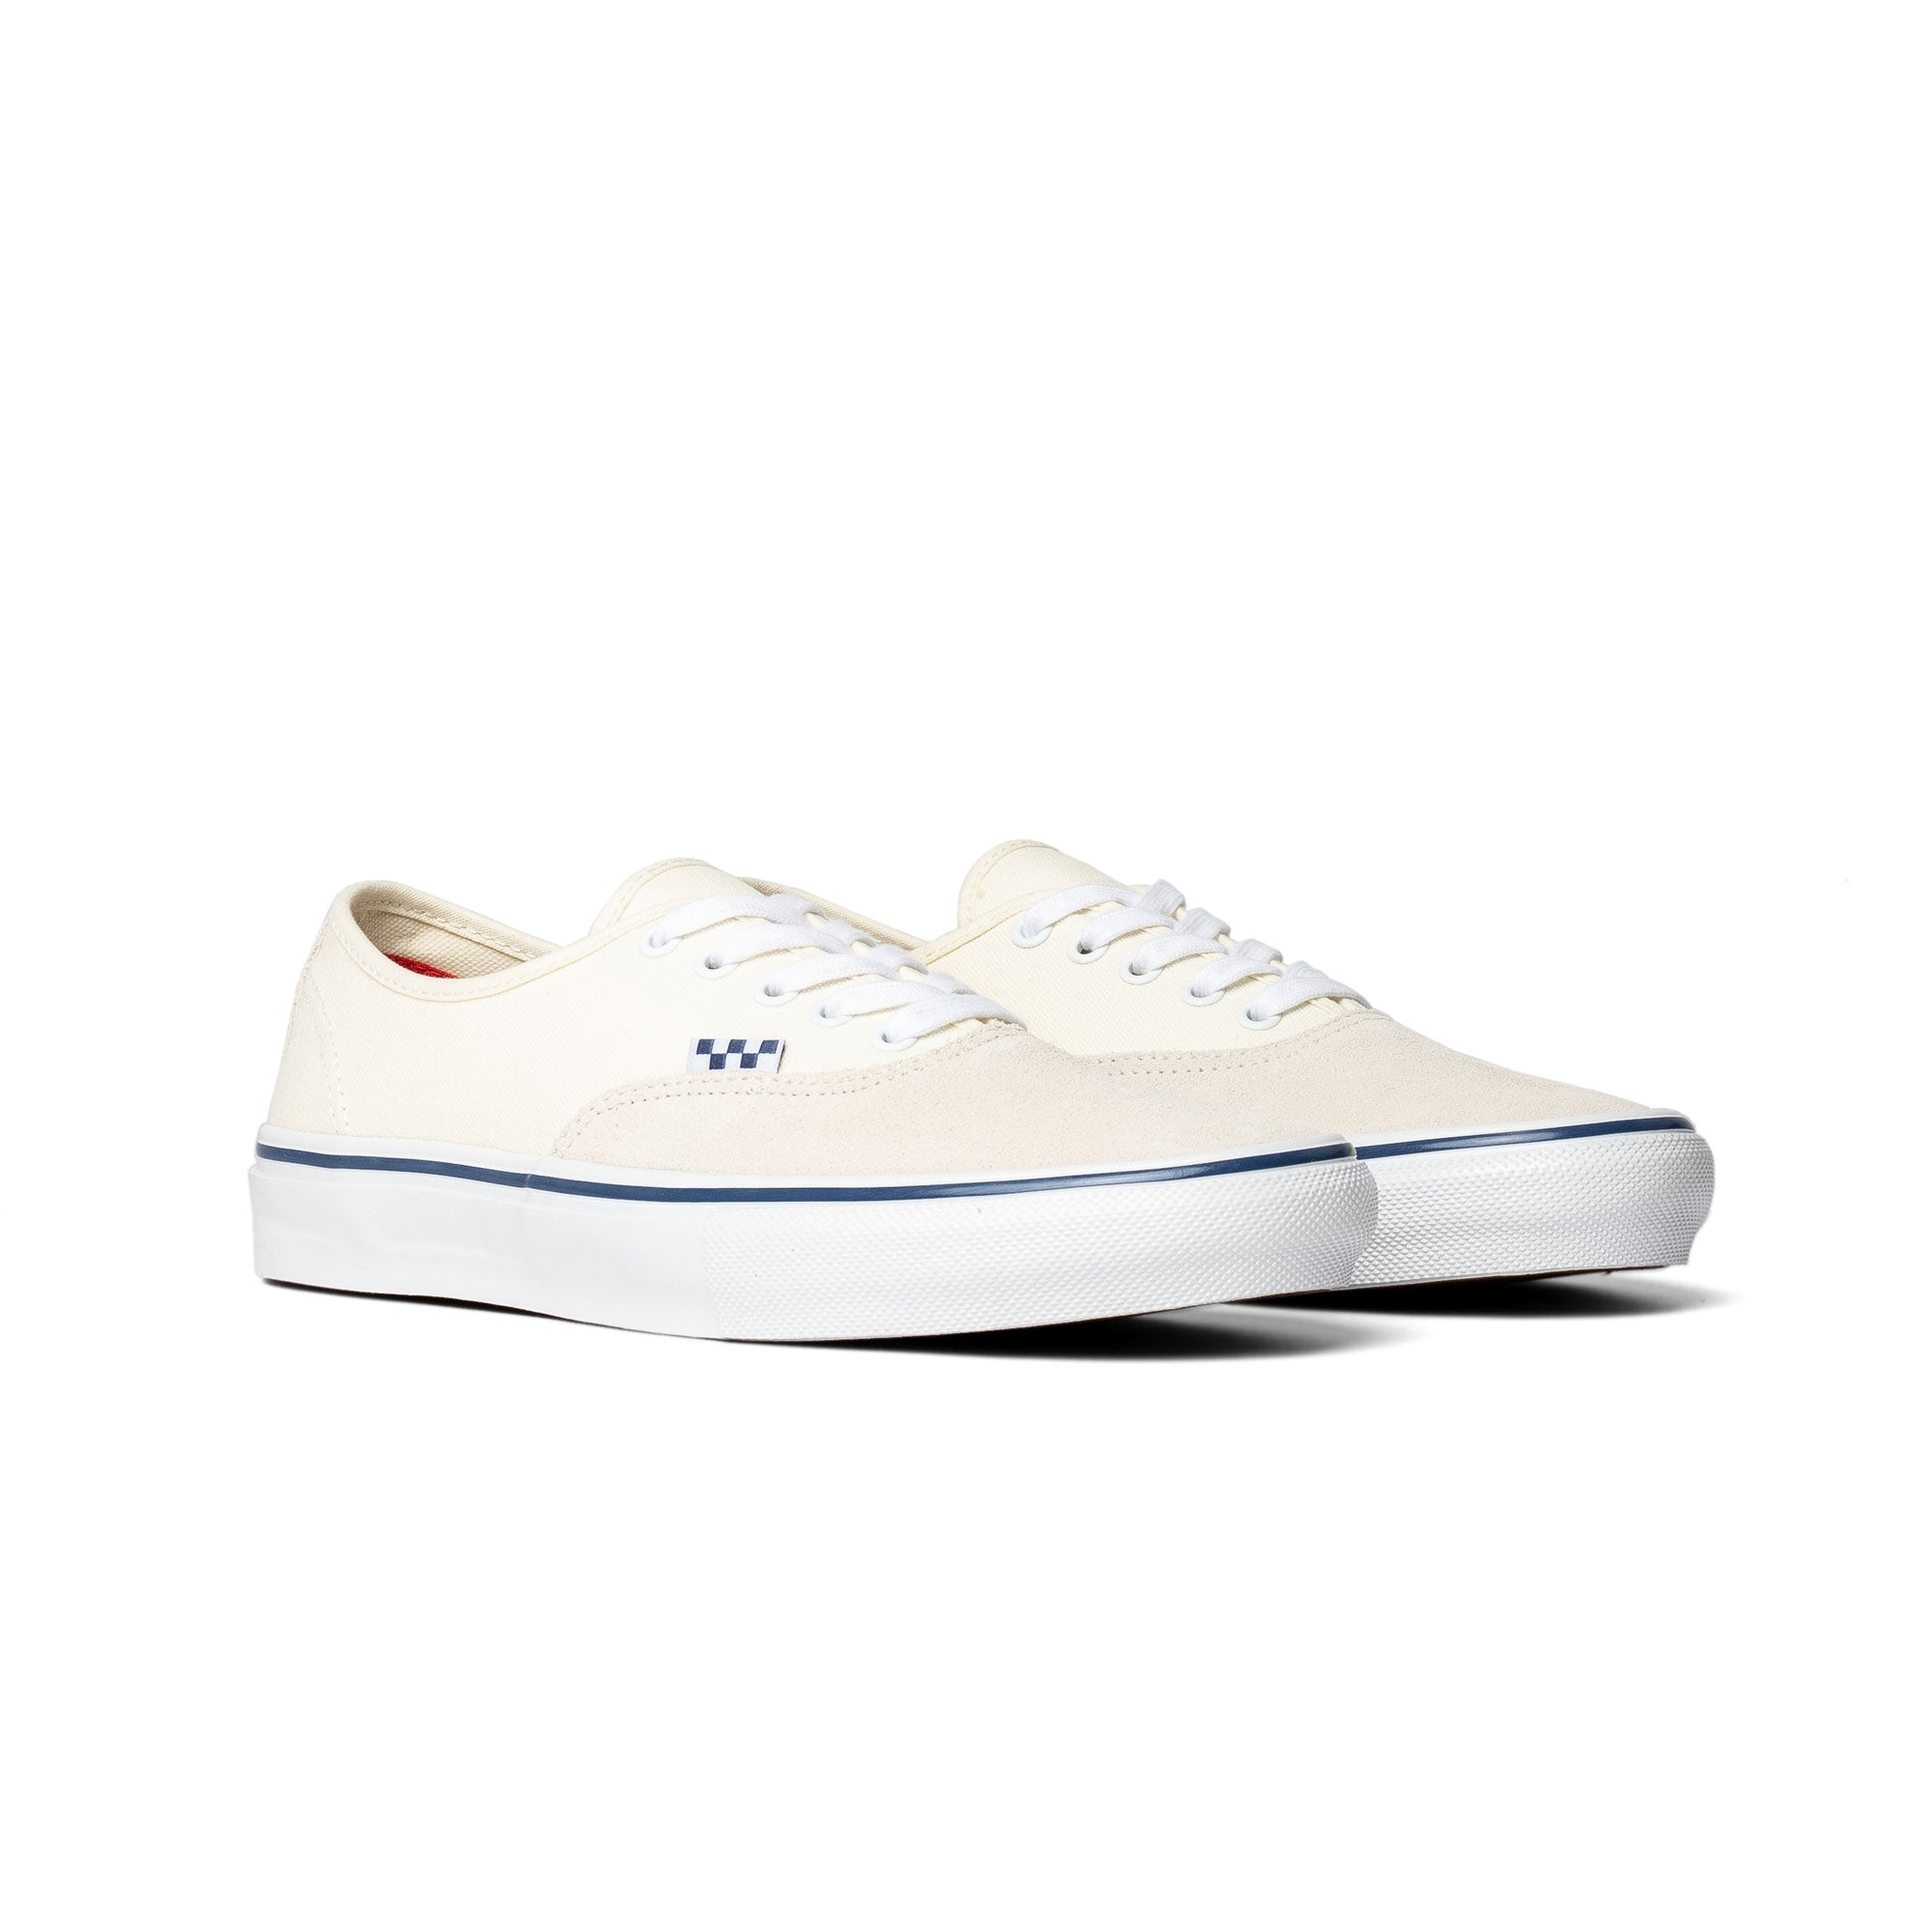 Vans Skate Authentic Product Photo #2